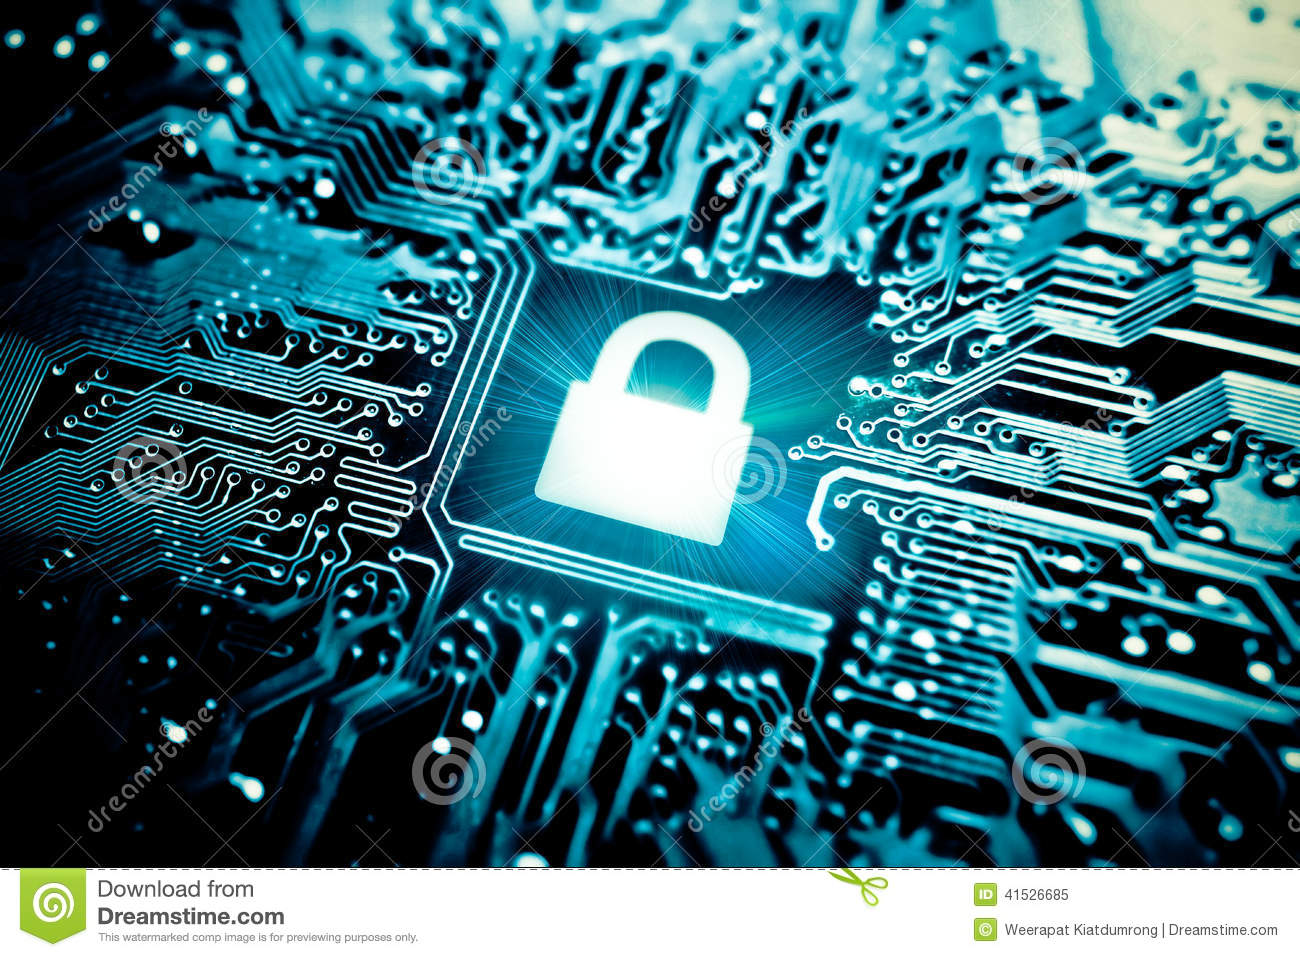 computer-security-lock-symbol-circuit-board-41526685.jpg